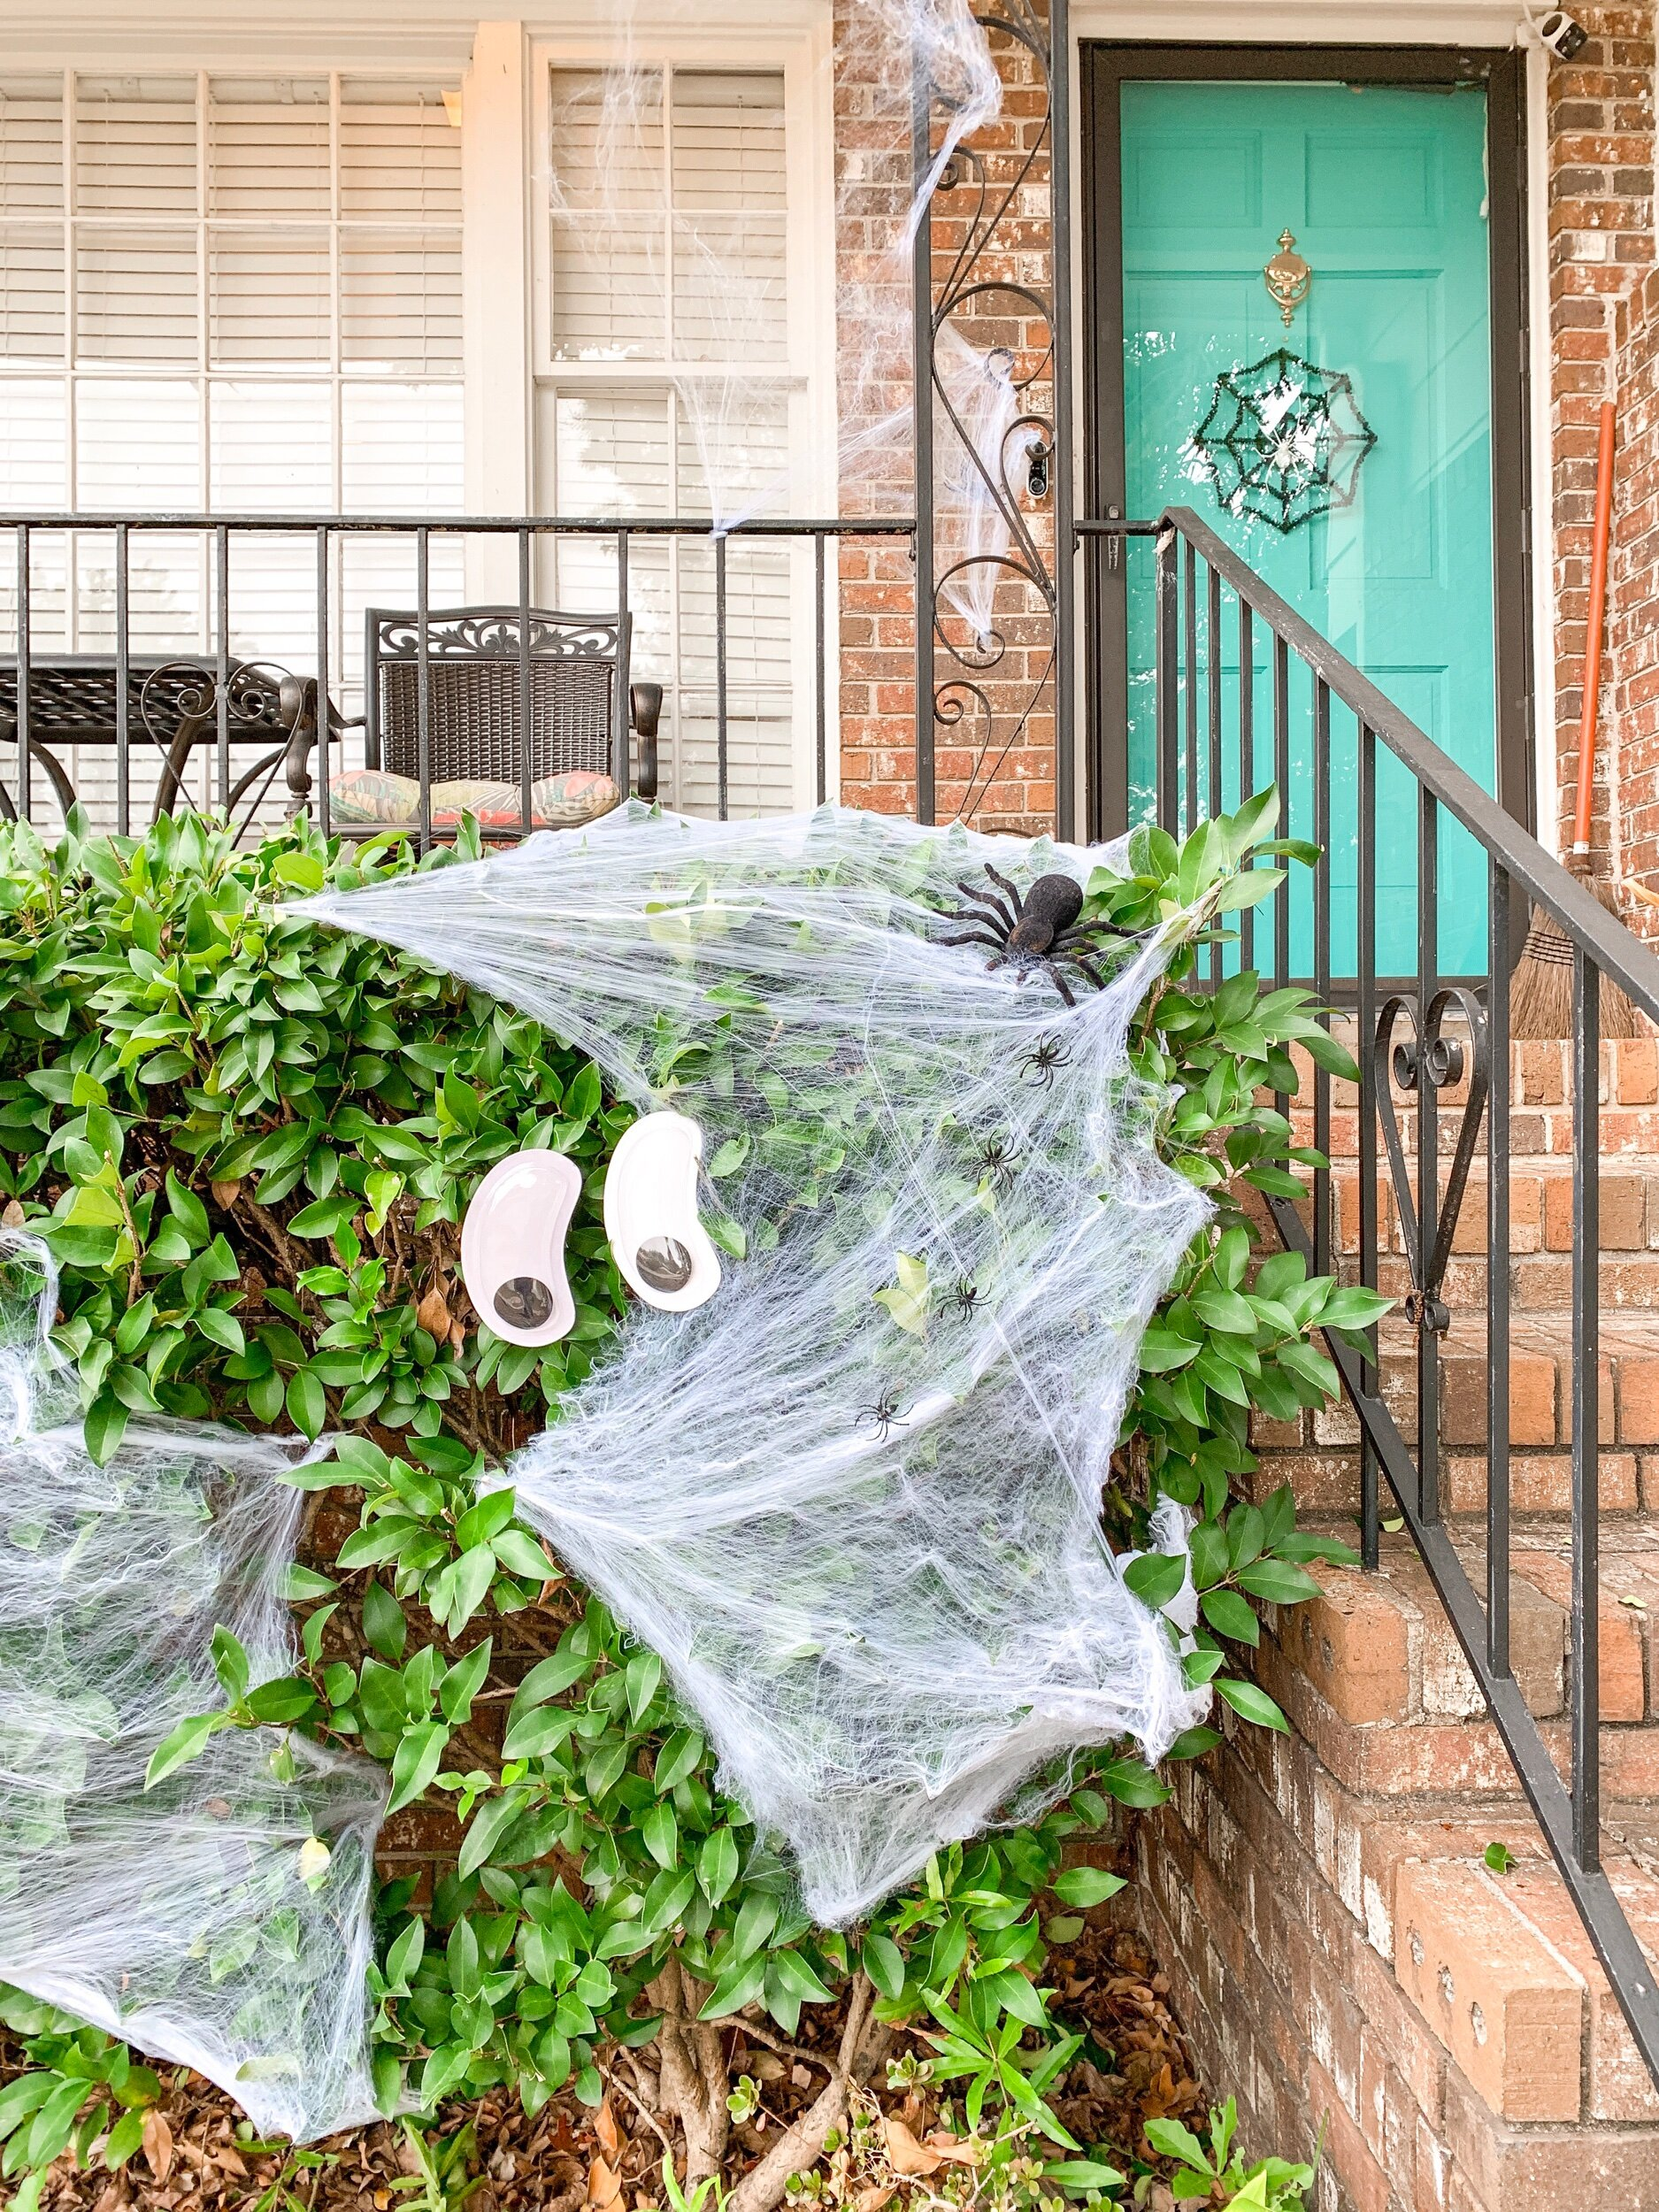 Glow in the dark googly eyes, spider webbing with little spiders, large fuzzy spider and spider door wreath are all affordable Halloween decorations from the Dollar Tree!!